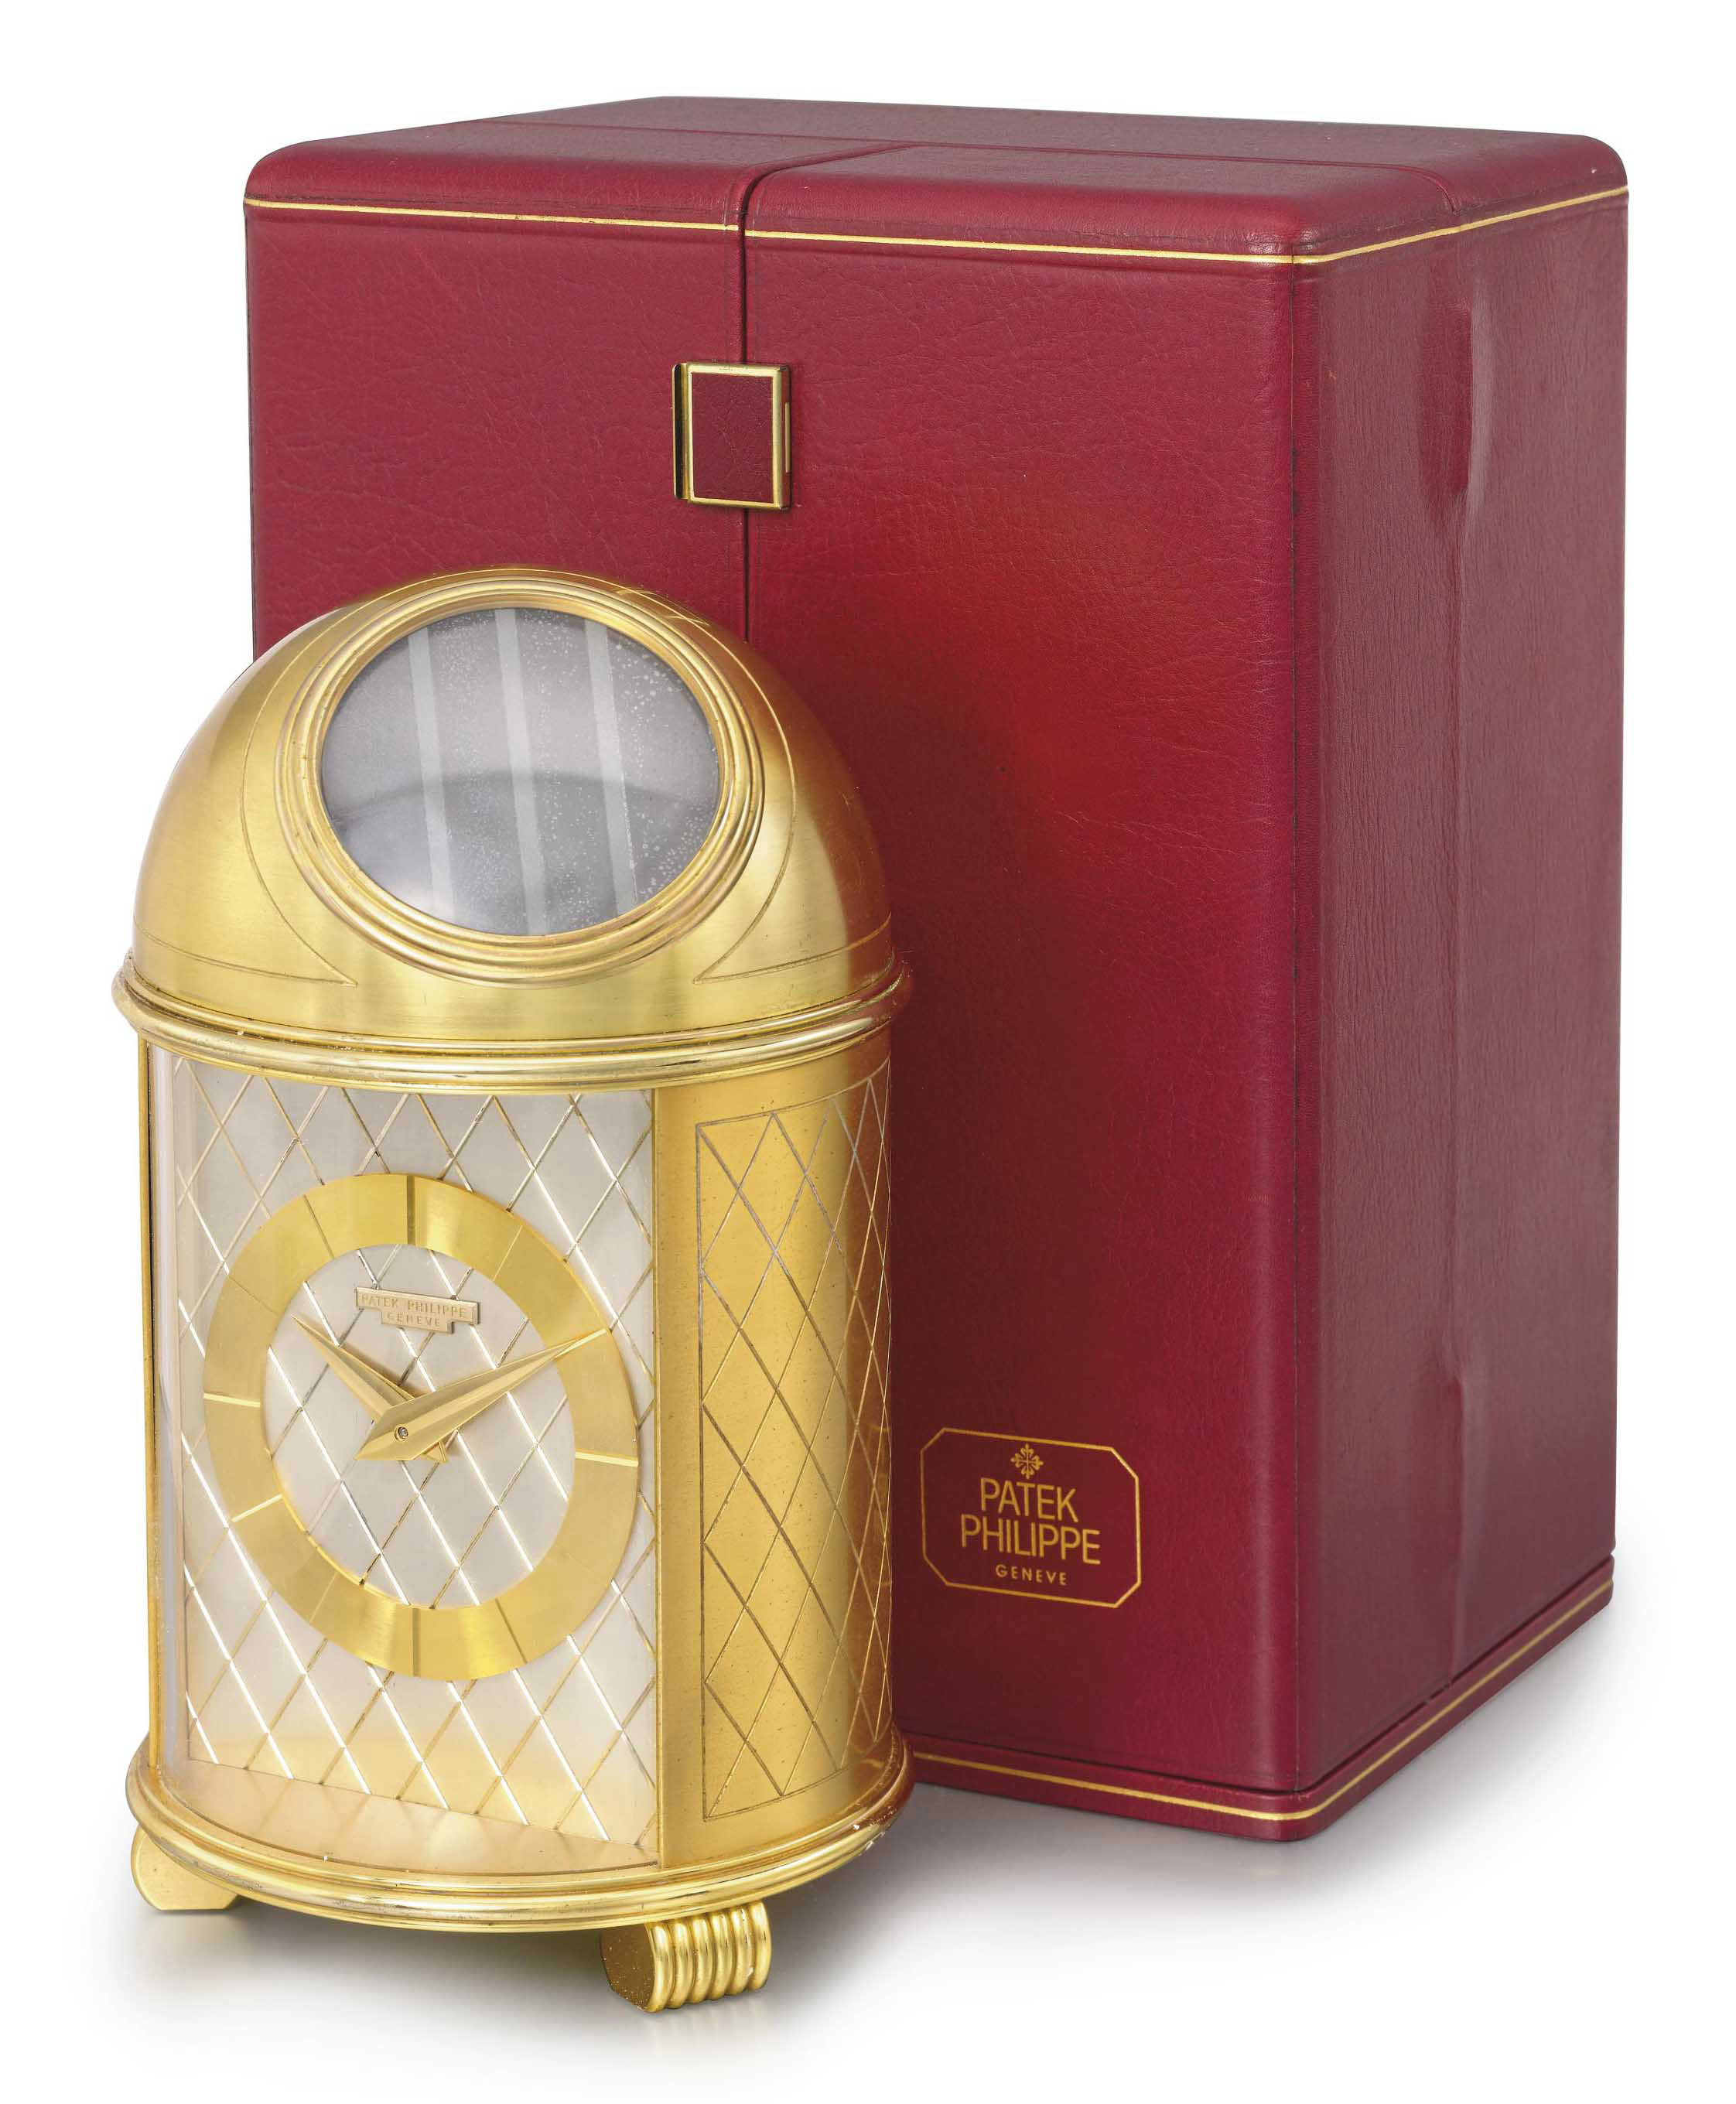 PATEK PHILIPPE. A FINE GILT BRASS SOLAR-POWERED DOMED TABLE CLOCK WITH ORIGINAL FITTED PRESENTATION BOX